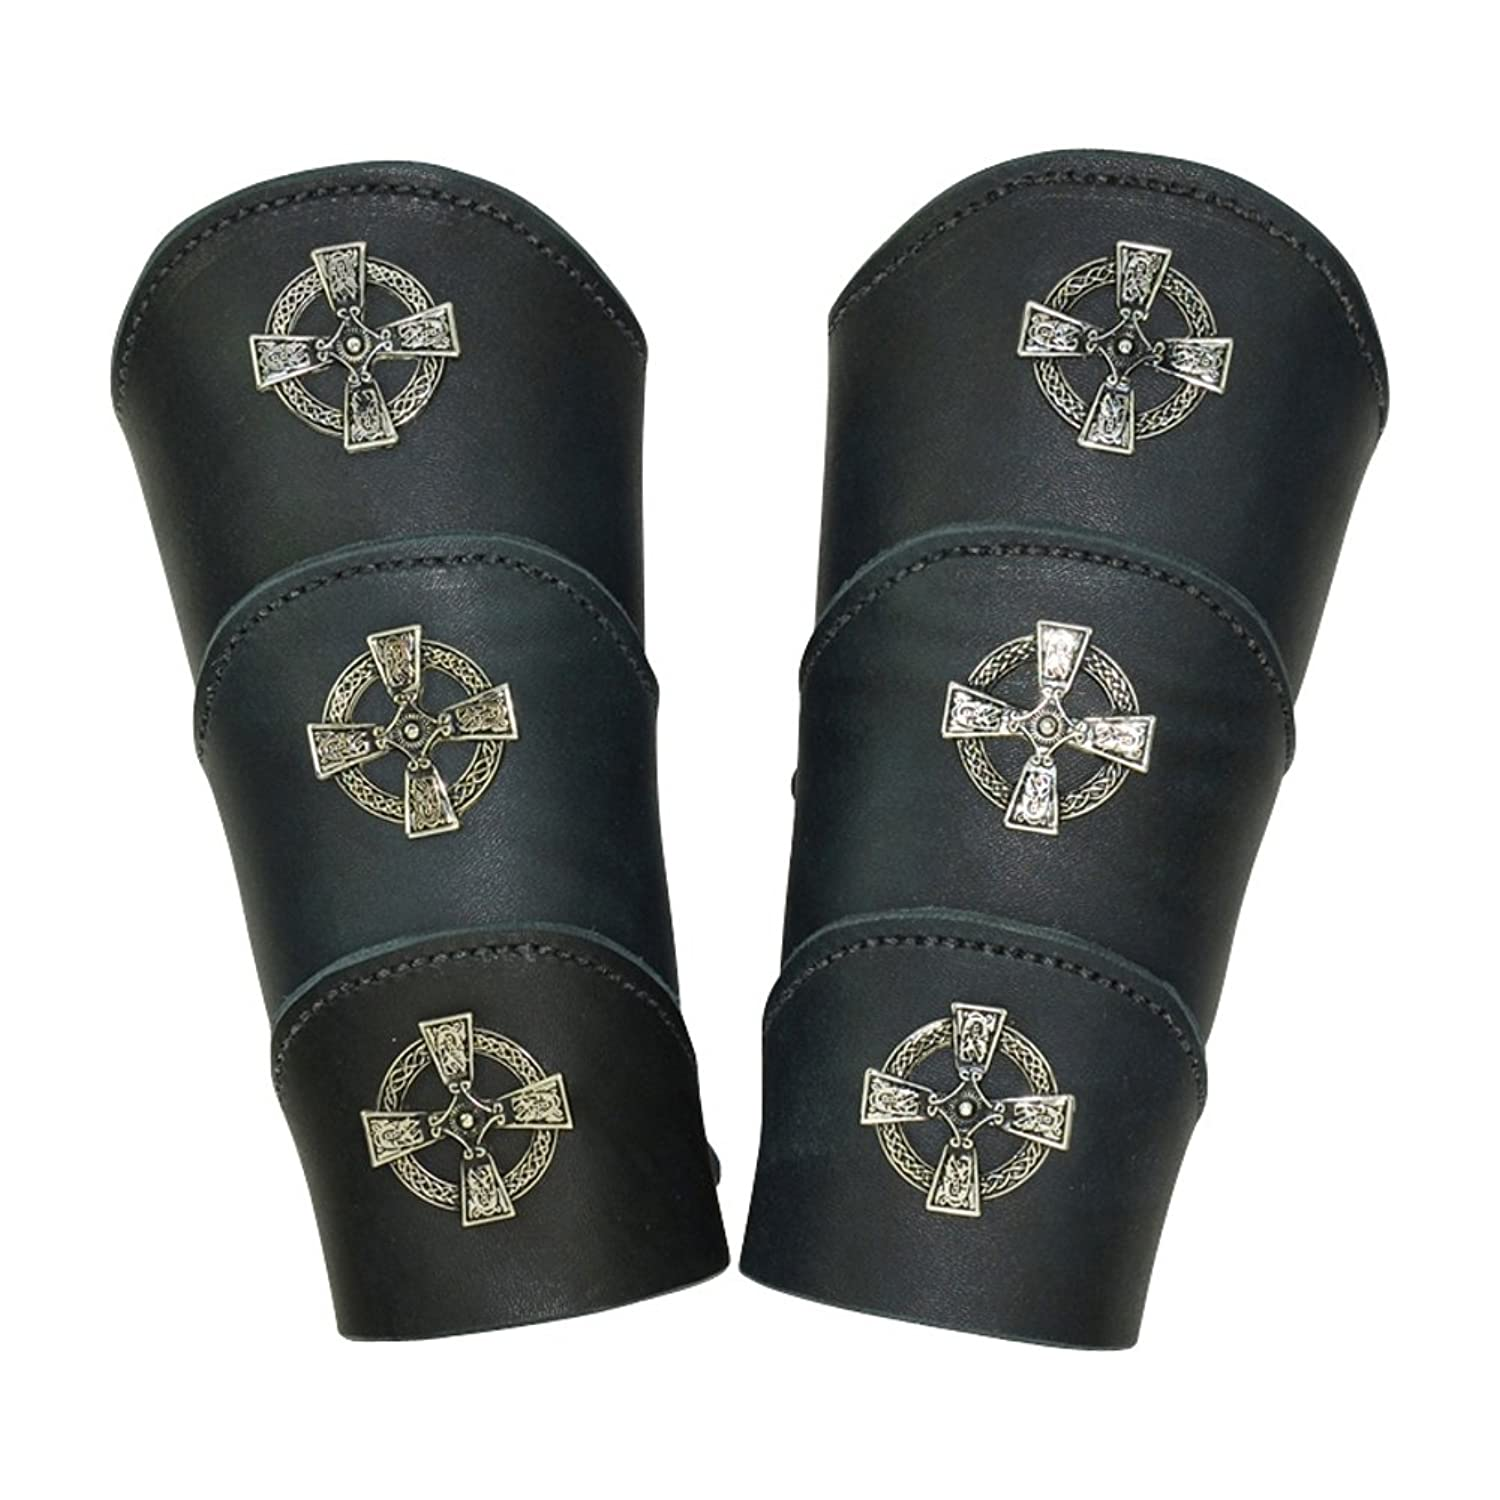 Deluxe Adult Costumes - Celtic warrior pirate black leather bracer arm guards.